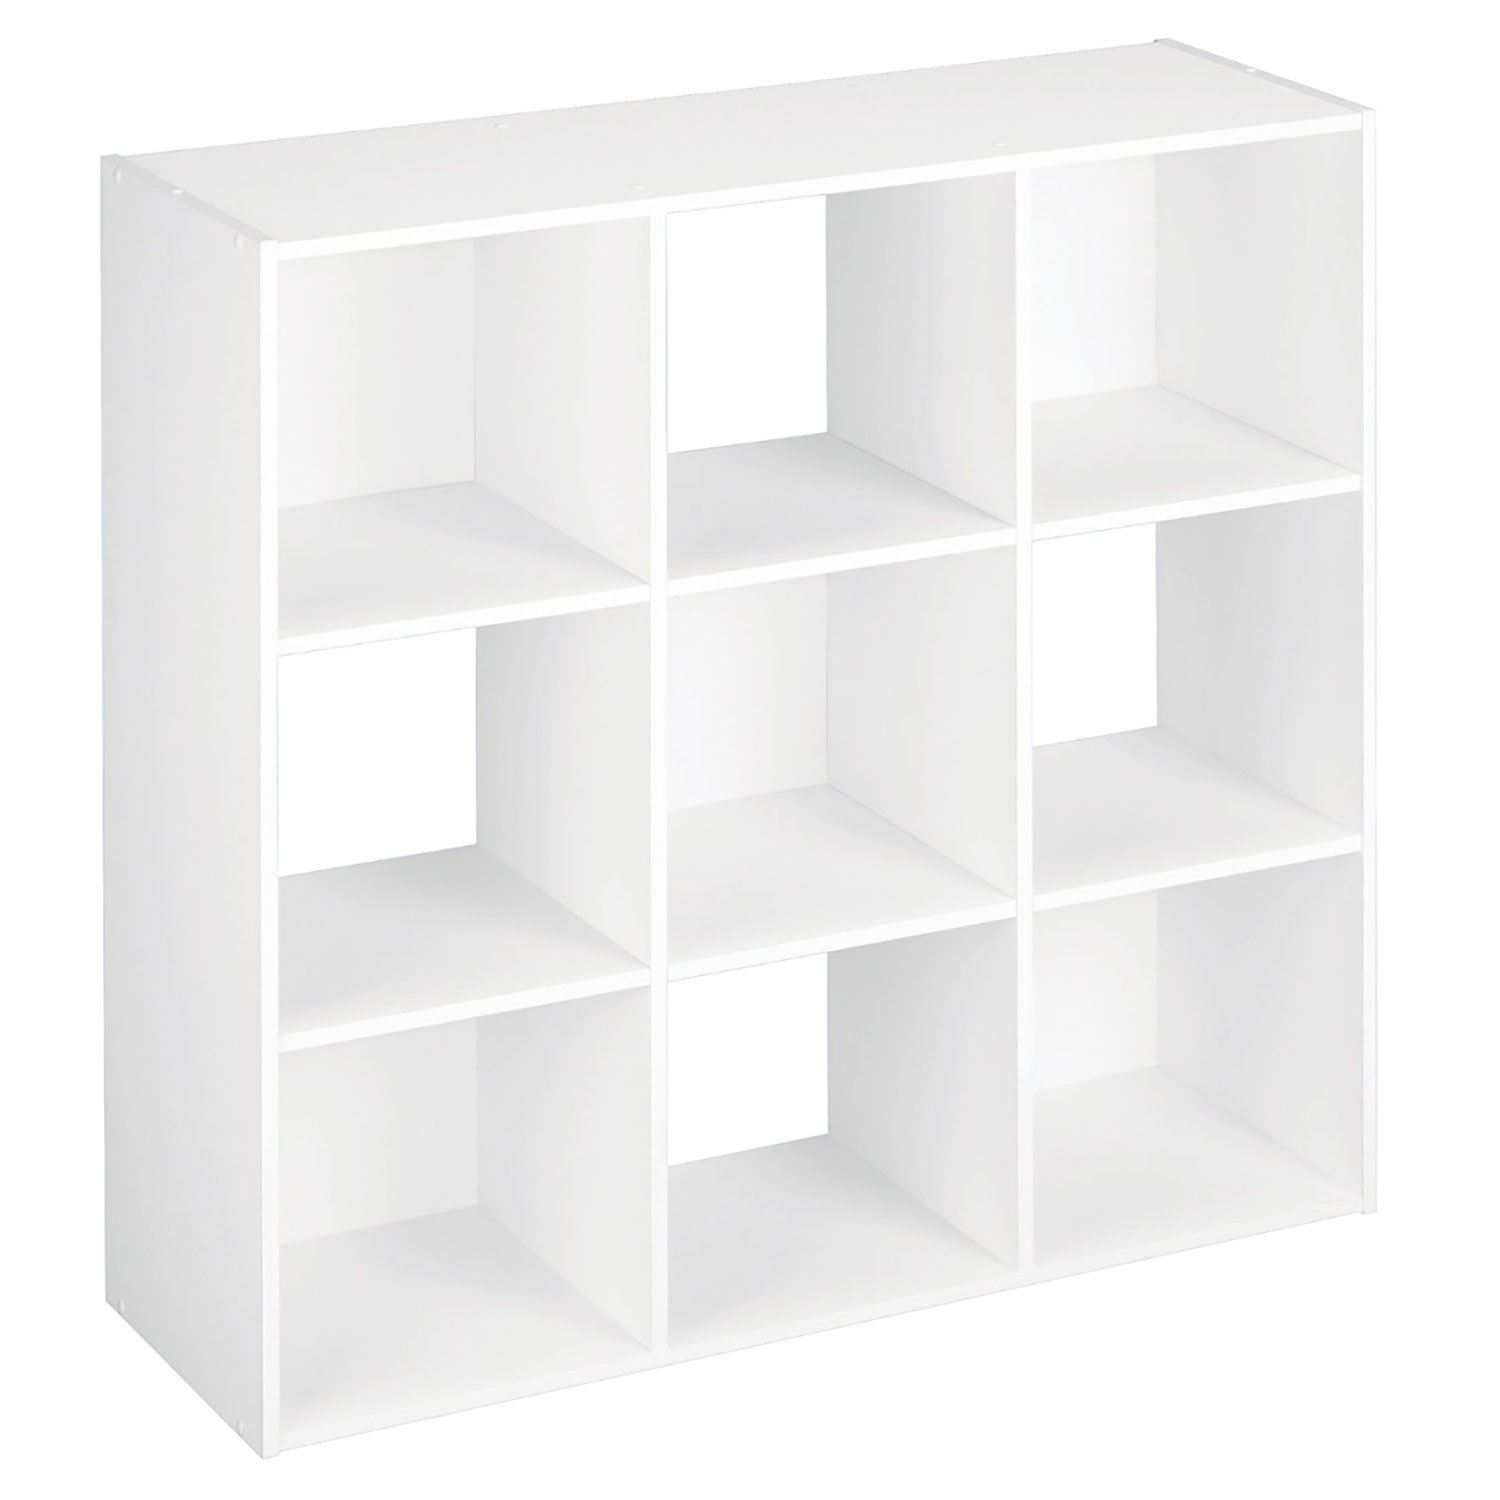 Cube Storage Shelves 9 Cube Wooden Bookcase Shelving Display Shelves Storage